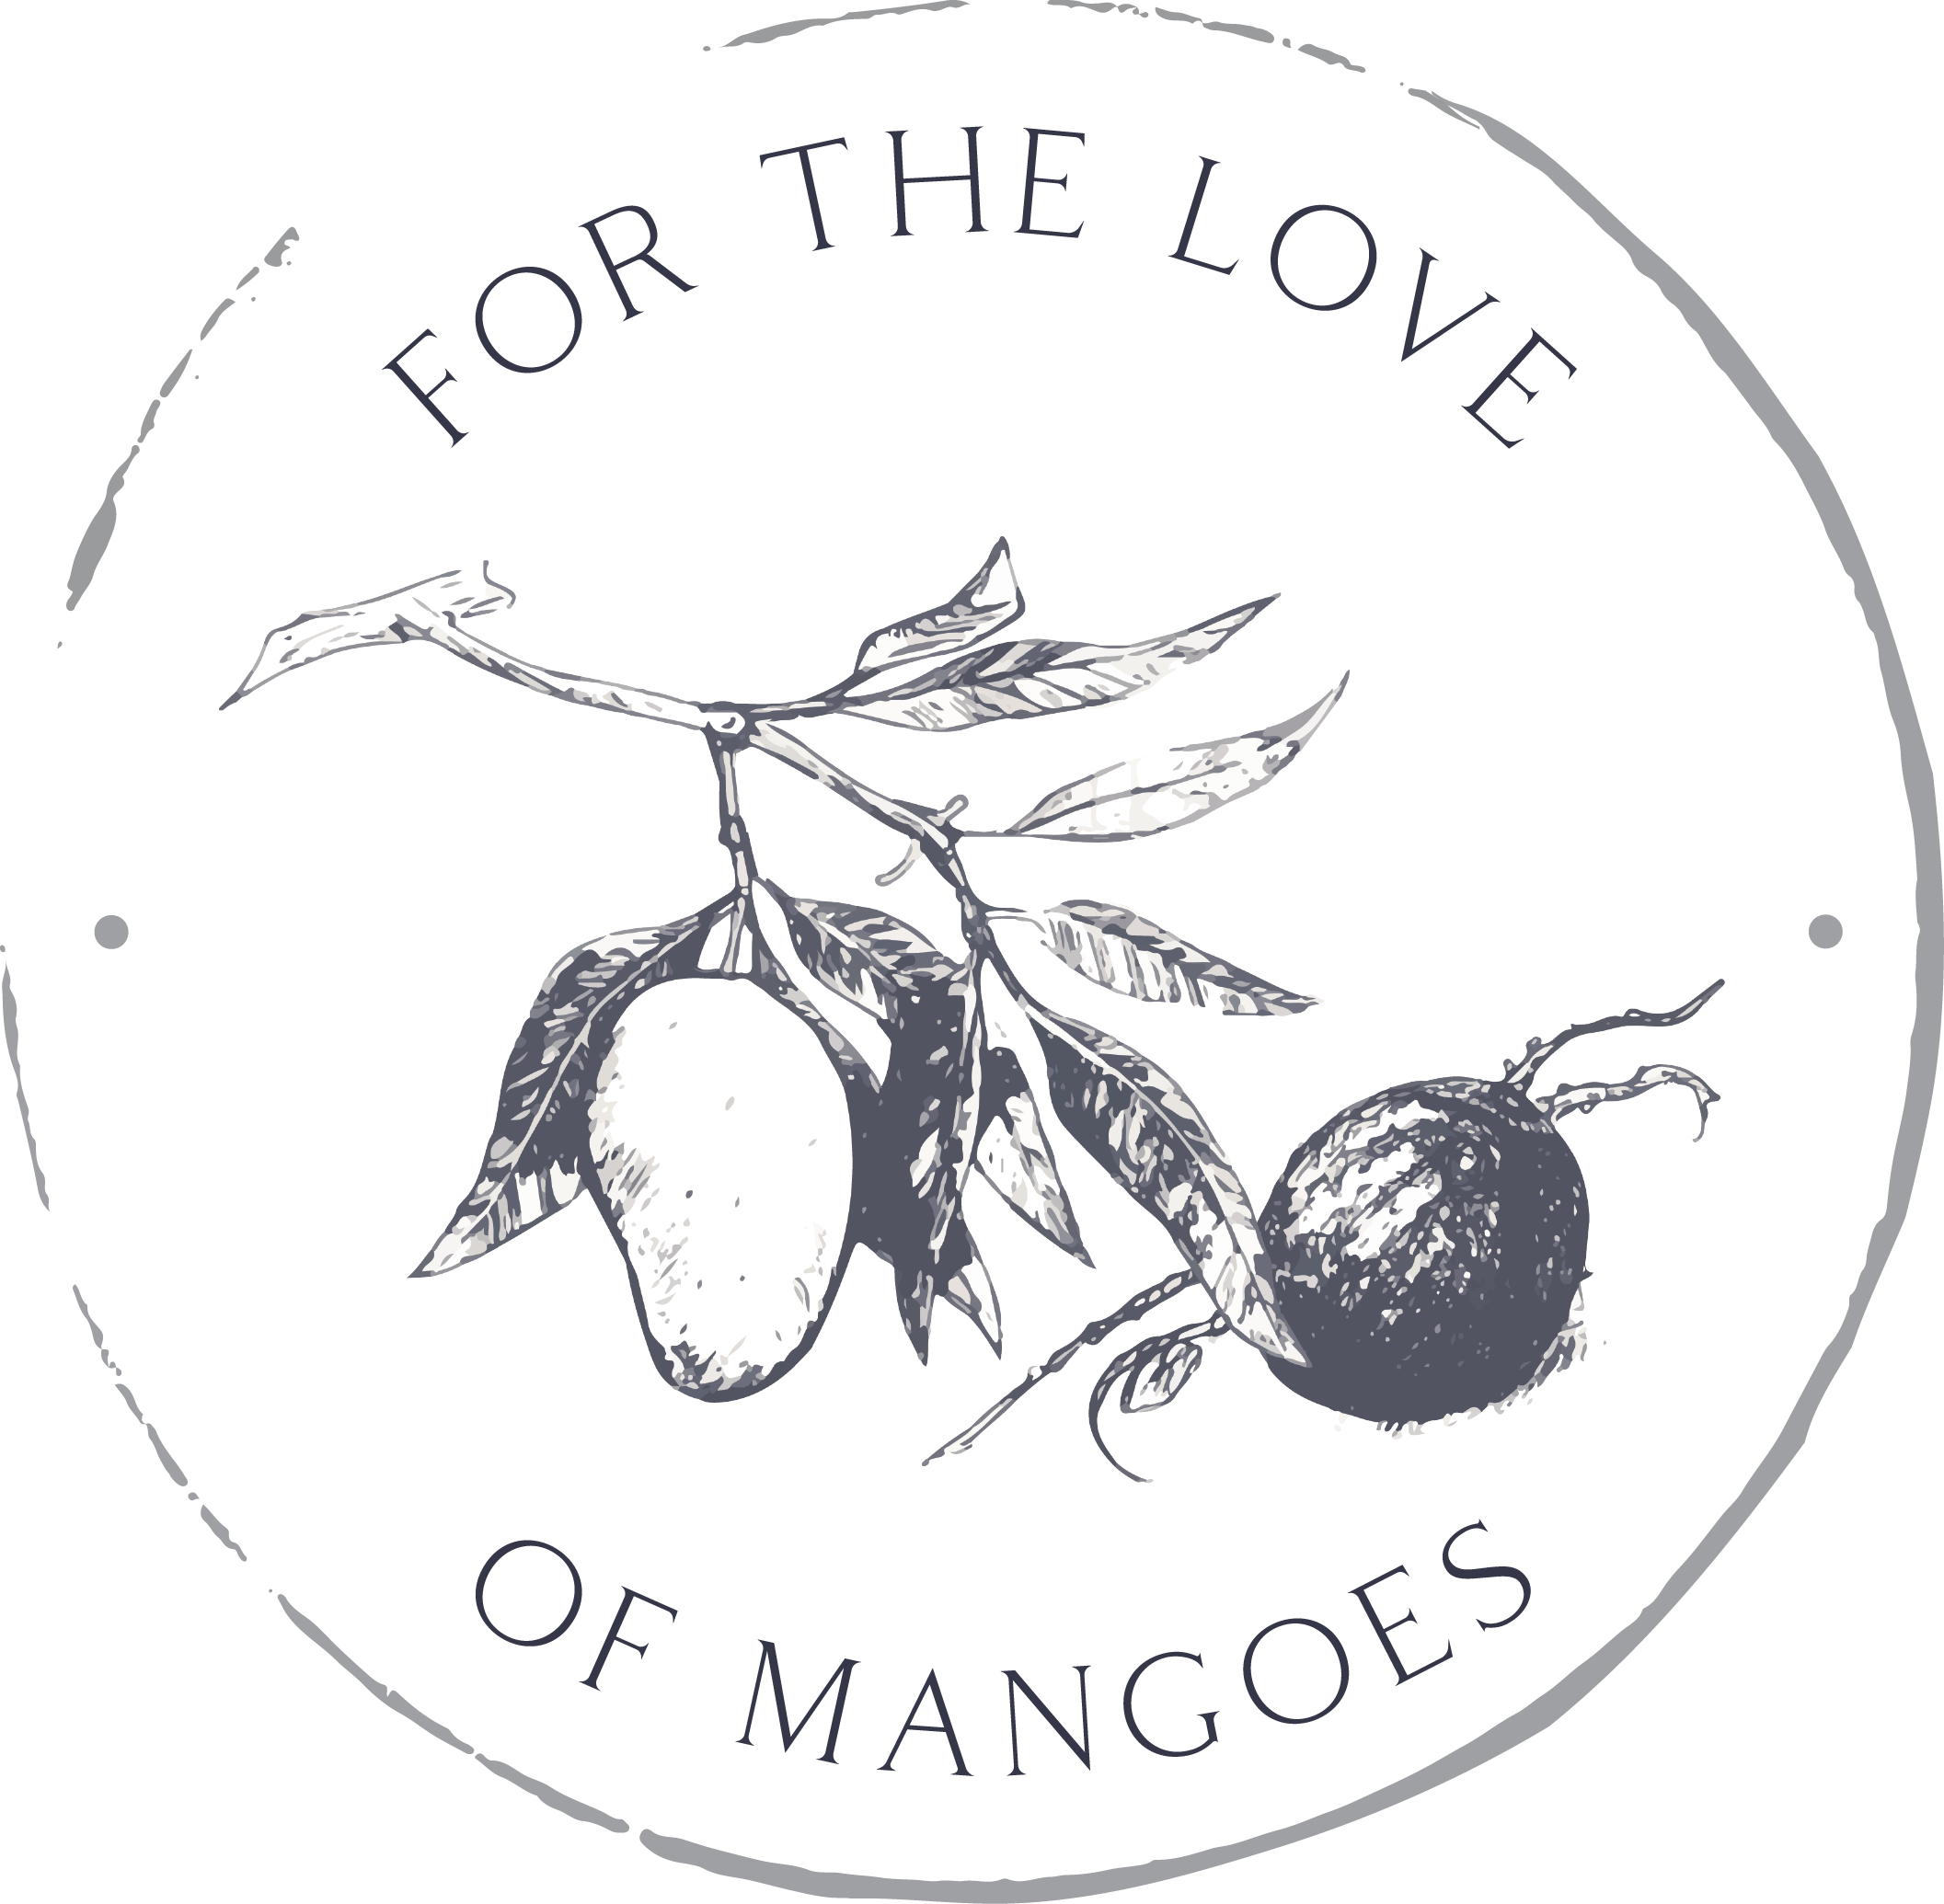 For the Love of Mangoes